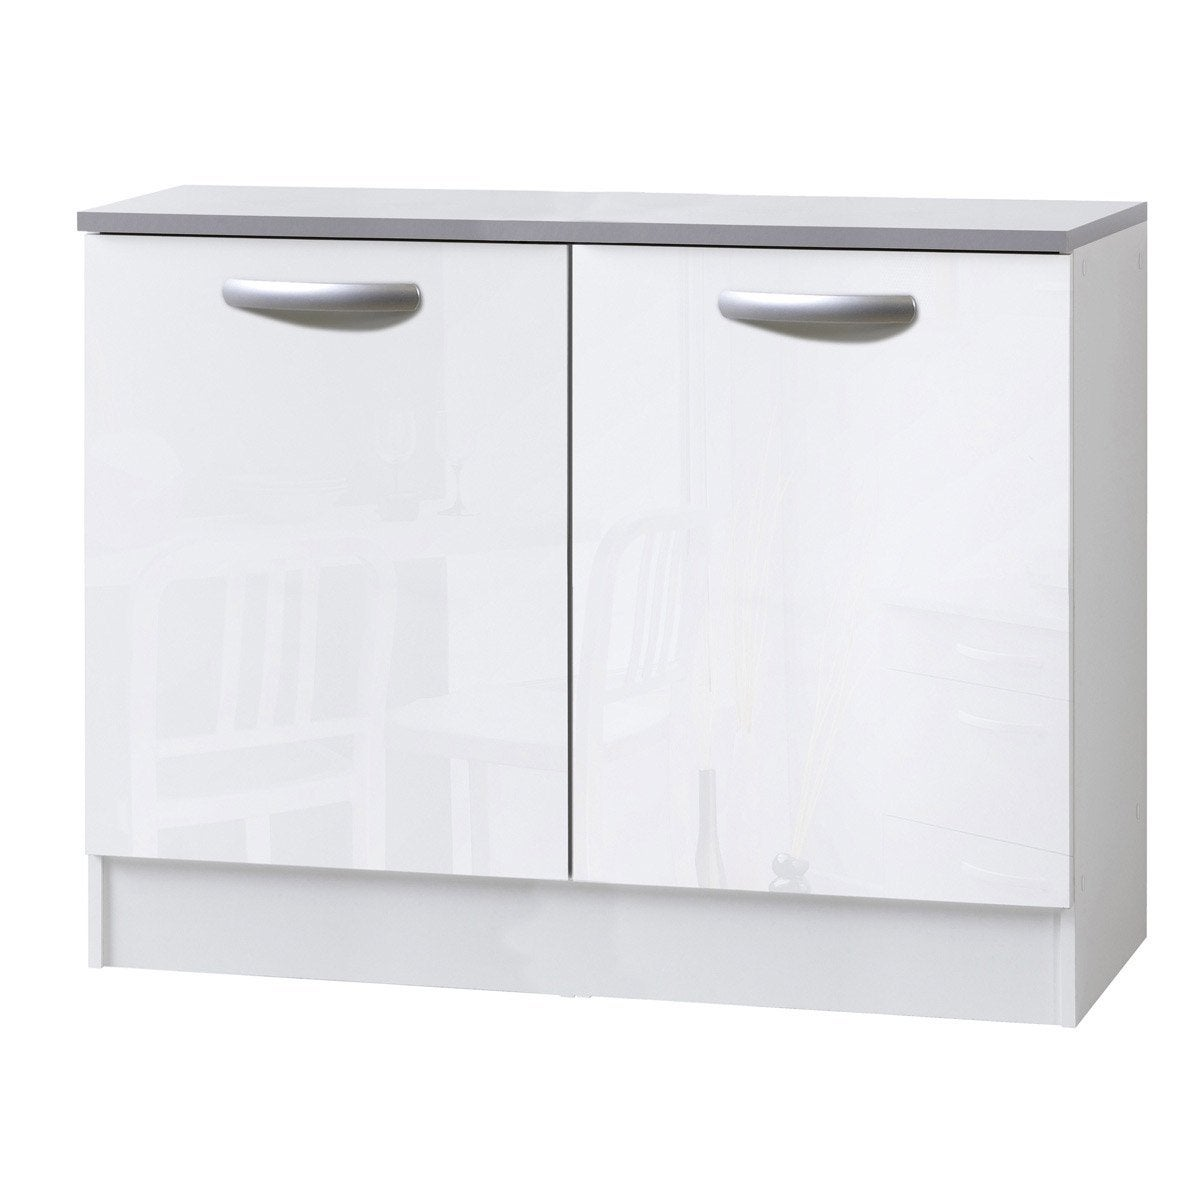 Meuble de cuisine bas 2 portes blanc brillant h86x l120x for Portes elements cuisine leroy merlin